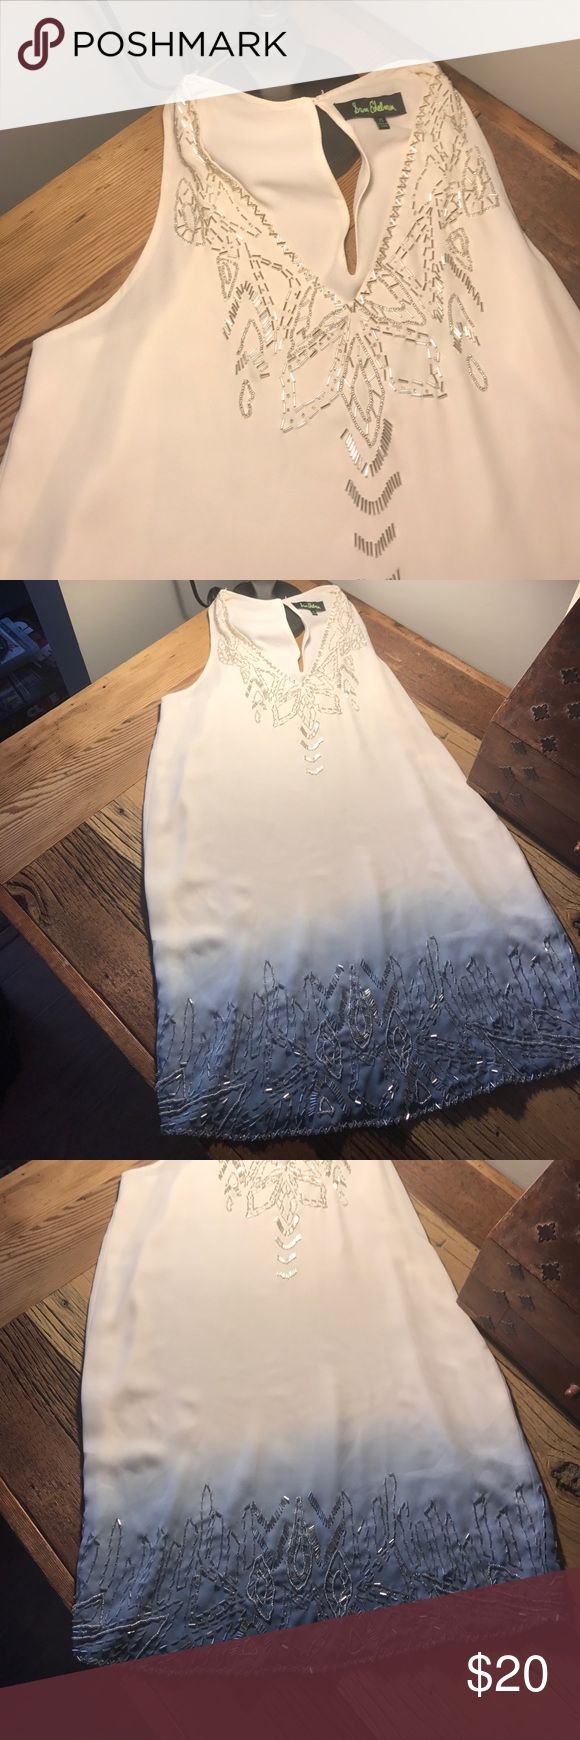 Sam Edelman gorgeous ombré dress This Sam Edelman dress is so beautiful! It has the most beautiful silver beads on it that give it the most elegant look! It ombrés from a beautiful blue to a cream. It is perfect for a night out, a big meeting, or a day at work! It is in perfect condition and was never worn! I have next day shipping on almost every order! Make me offers and ask me questions! Sam Edelman Dresses Mini